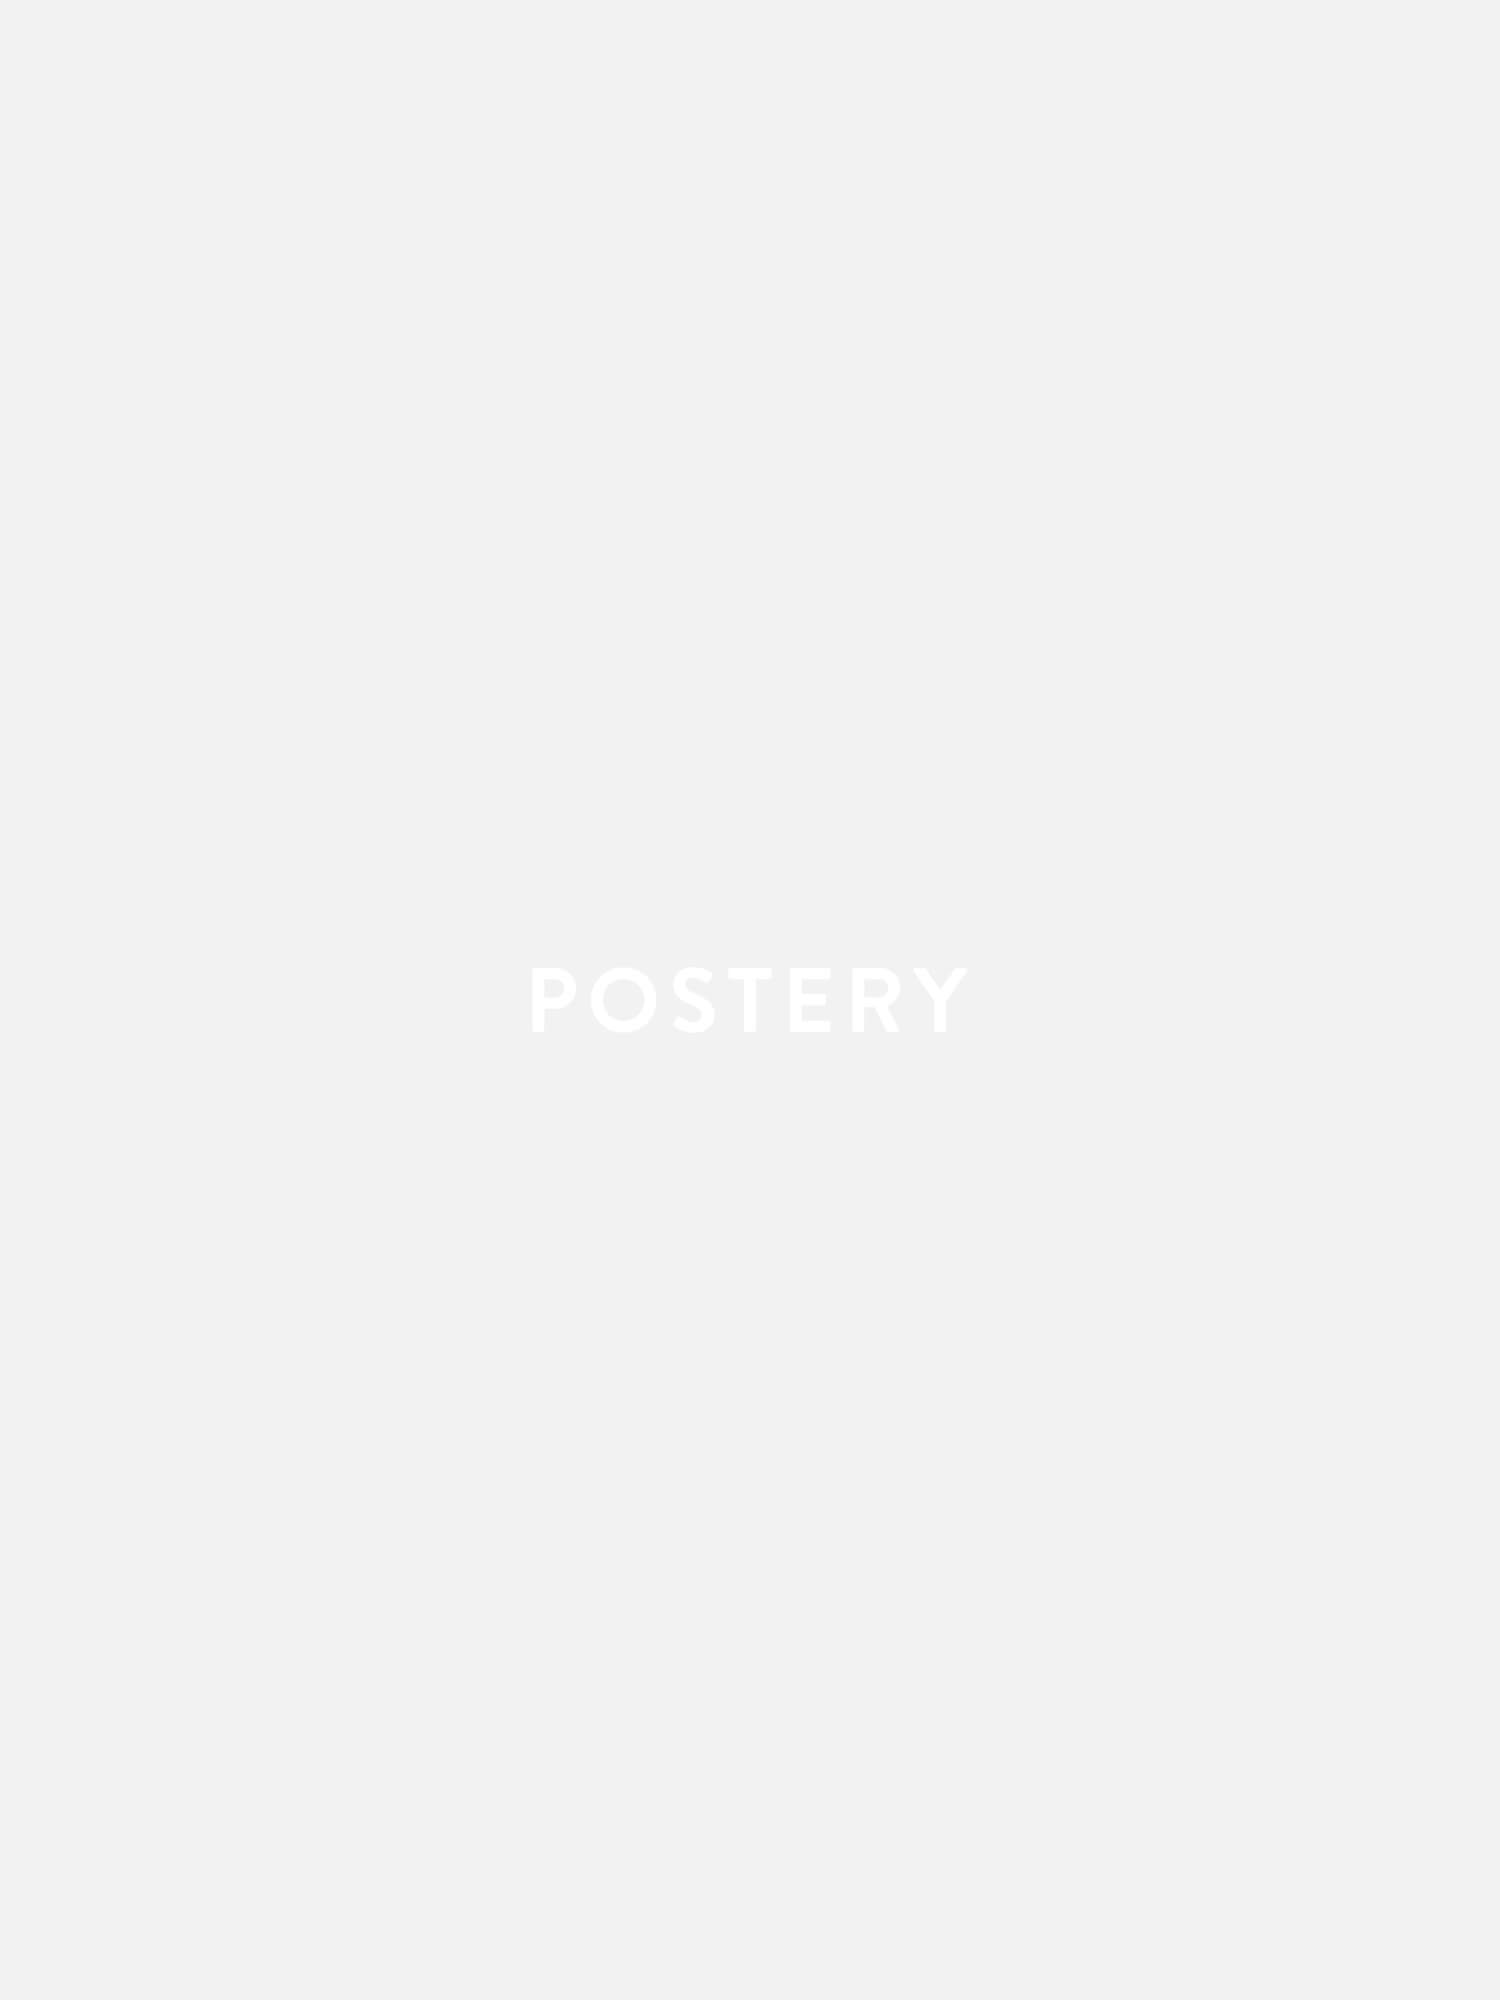 Hotel in Morocco Poster